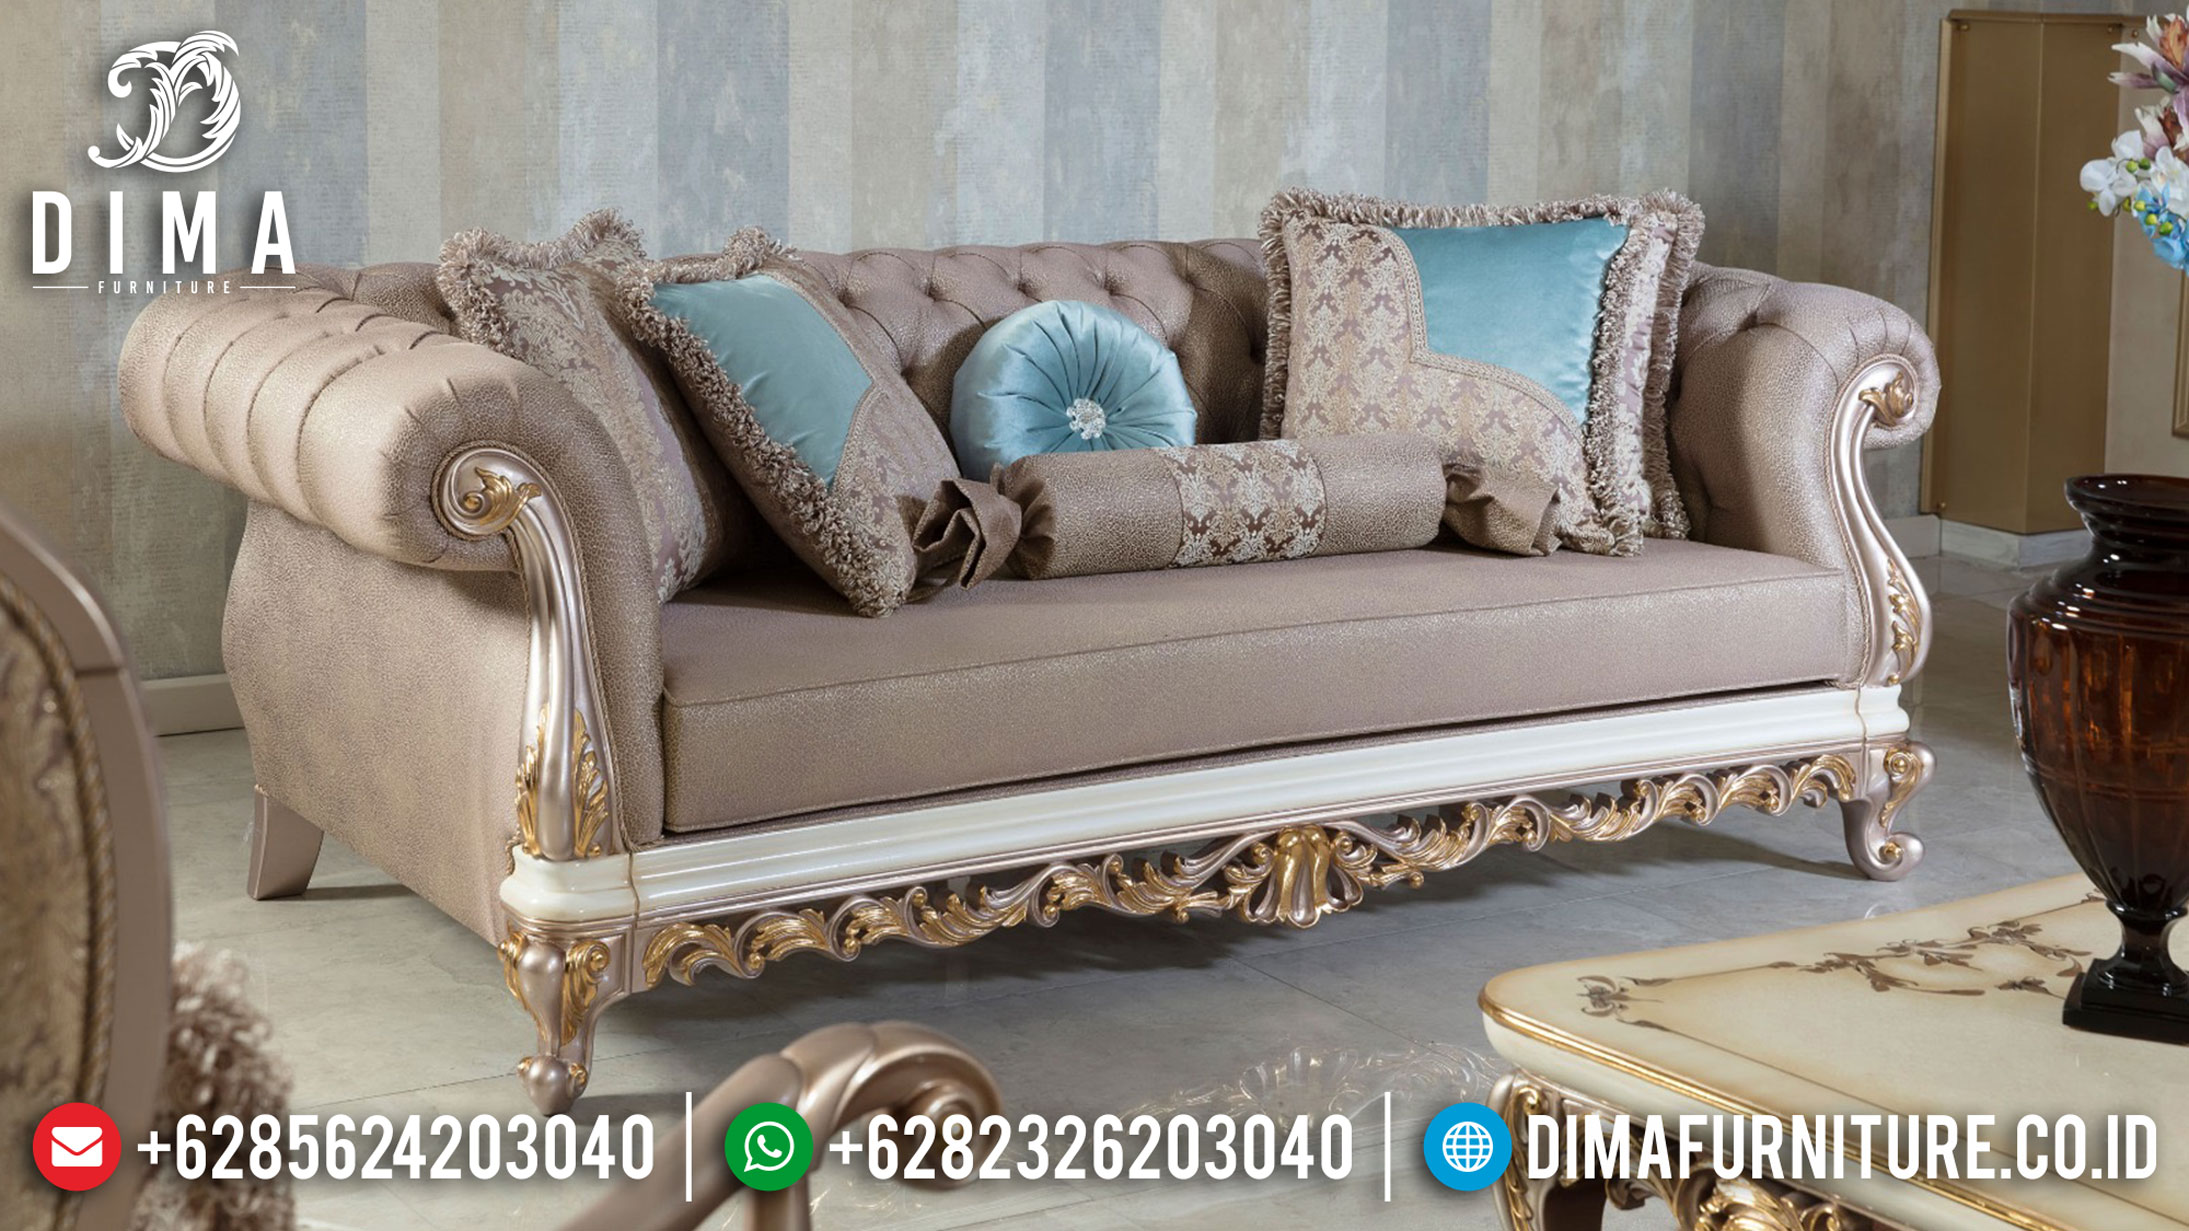 Model Sofa Mewah Jepara Luxury Design Furniture Jepara Terbaru TTJ-1055